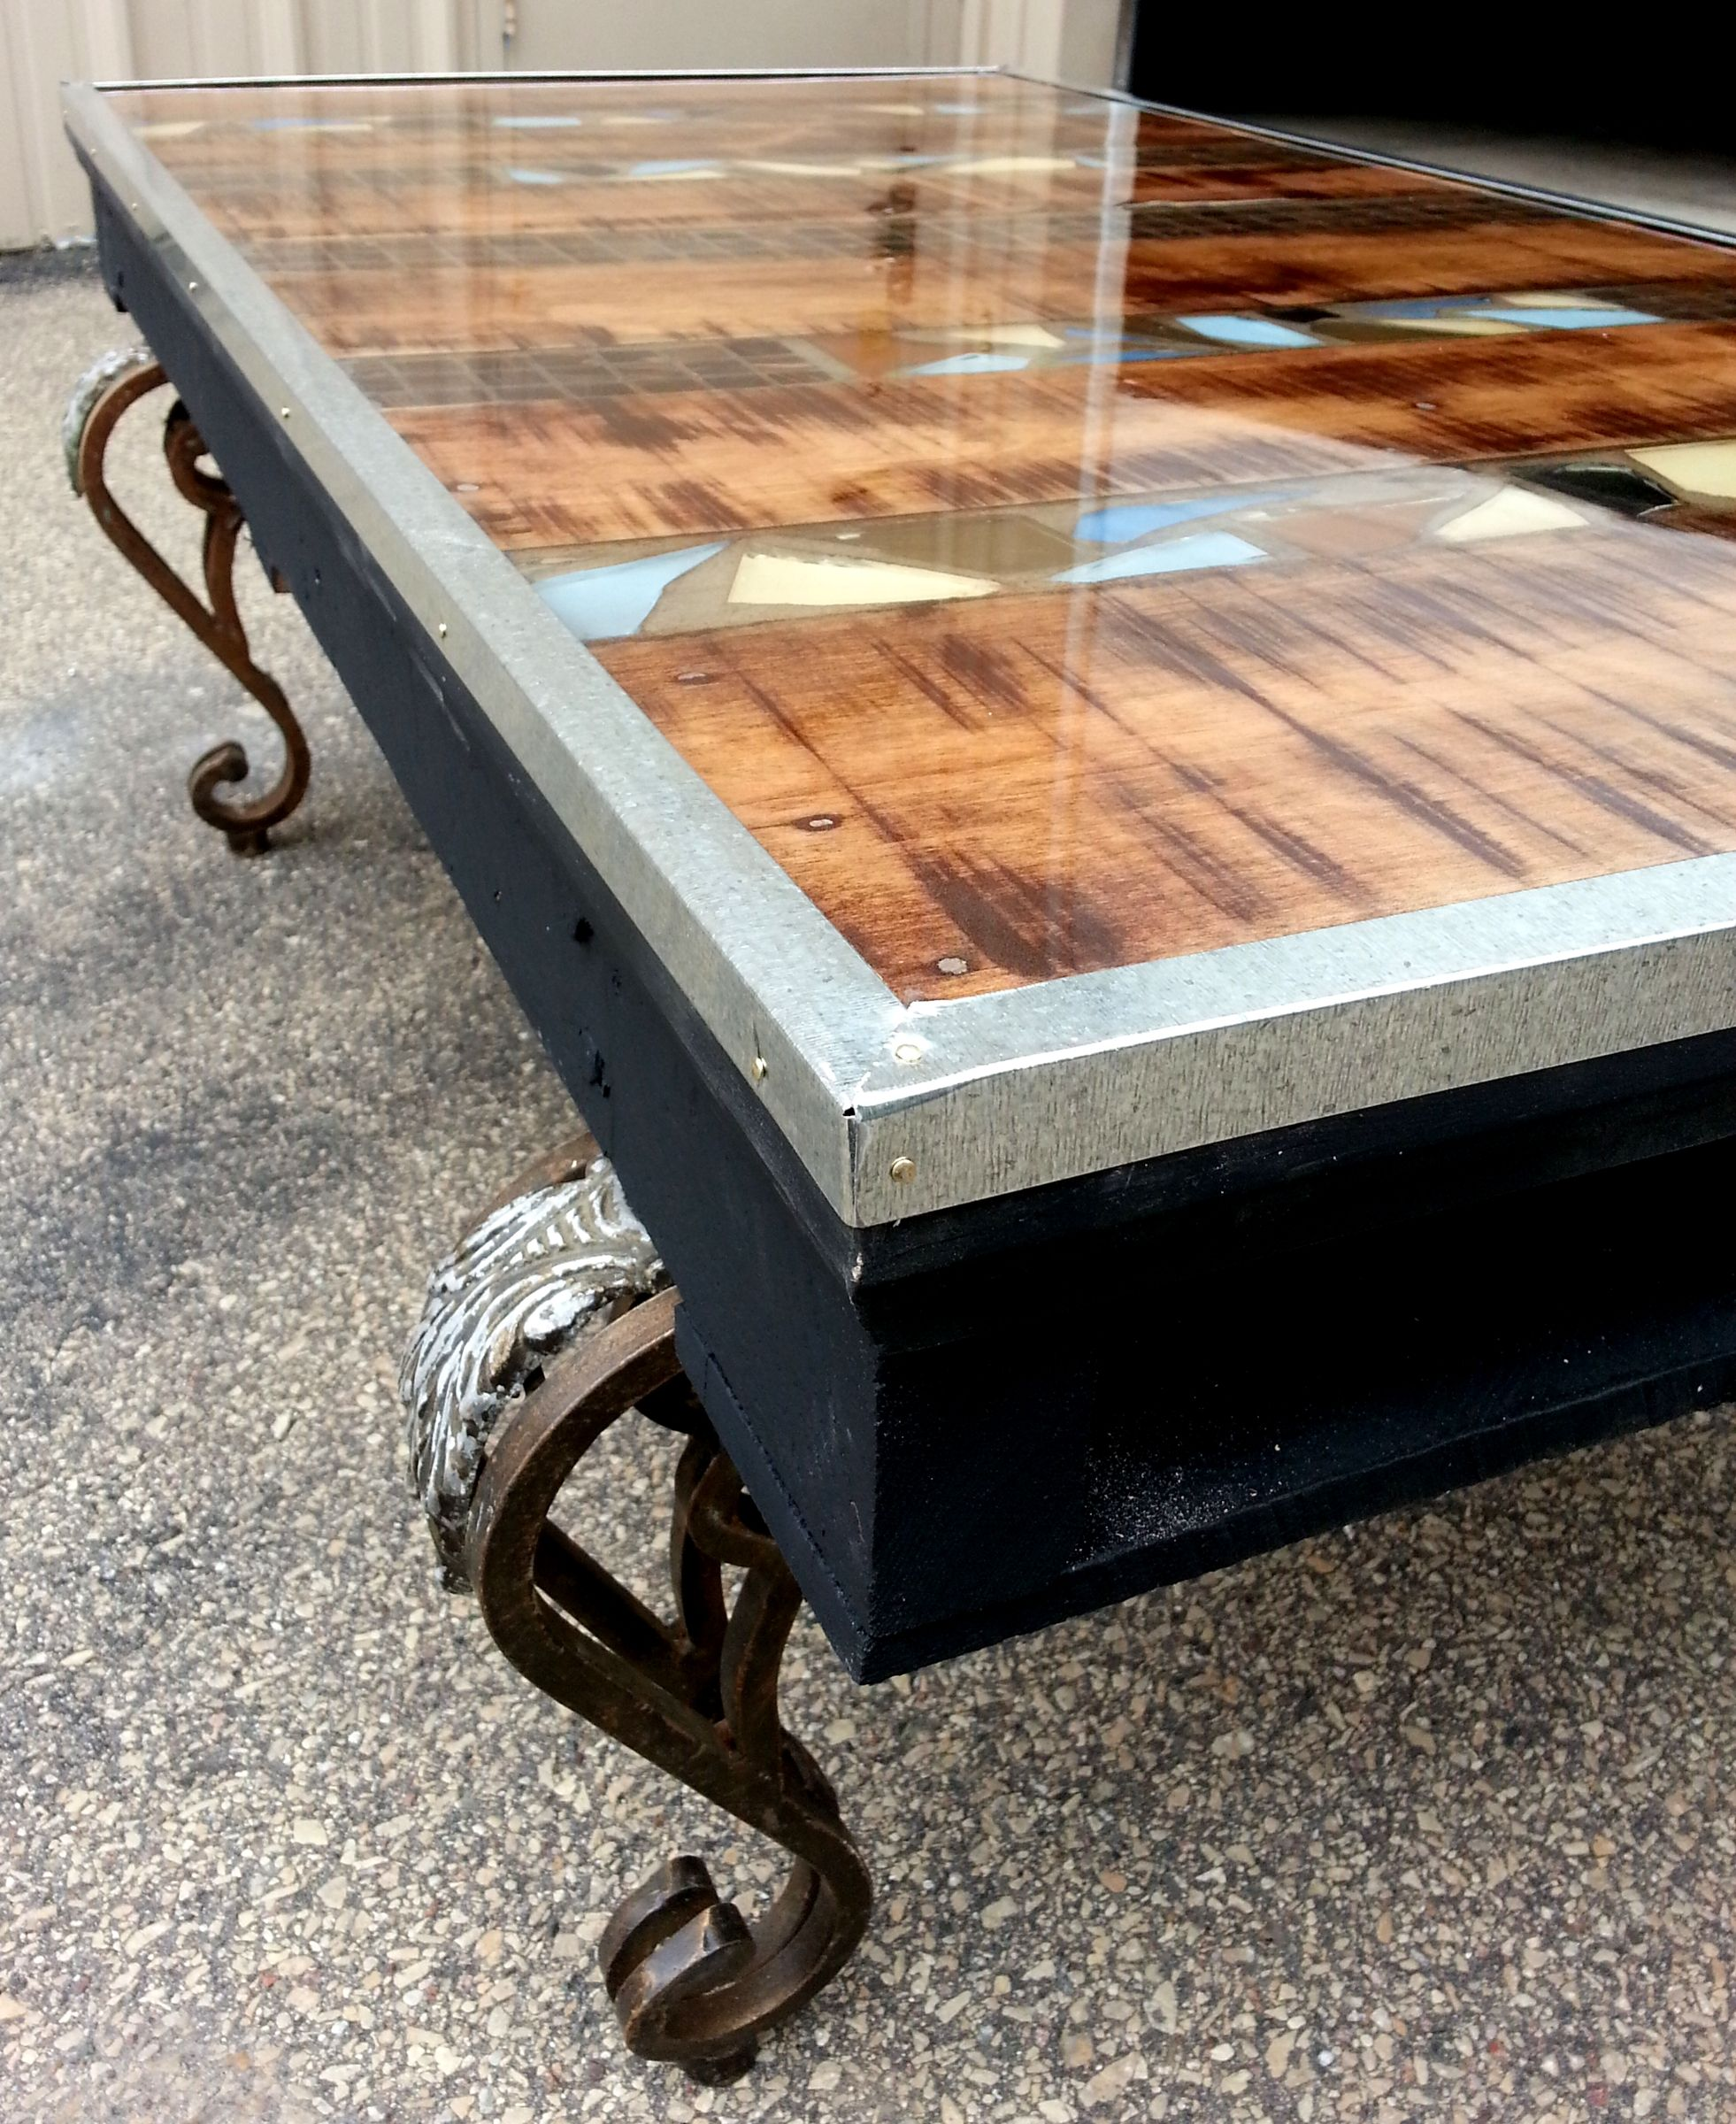 Decorative 48x 28 coffee table created with the use of a pallet decorative coffee table created with the use of a pallet broken pieces of ceramic tile repurposed metal legs from a different coffee table epoxy coating doublecrazyfo Images